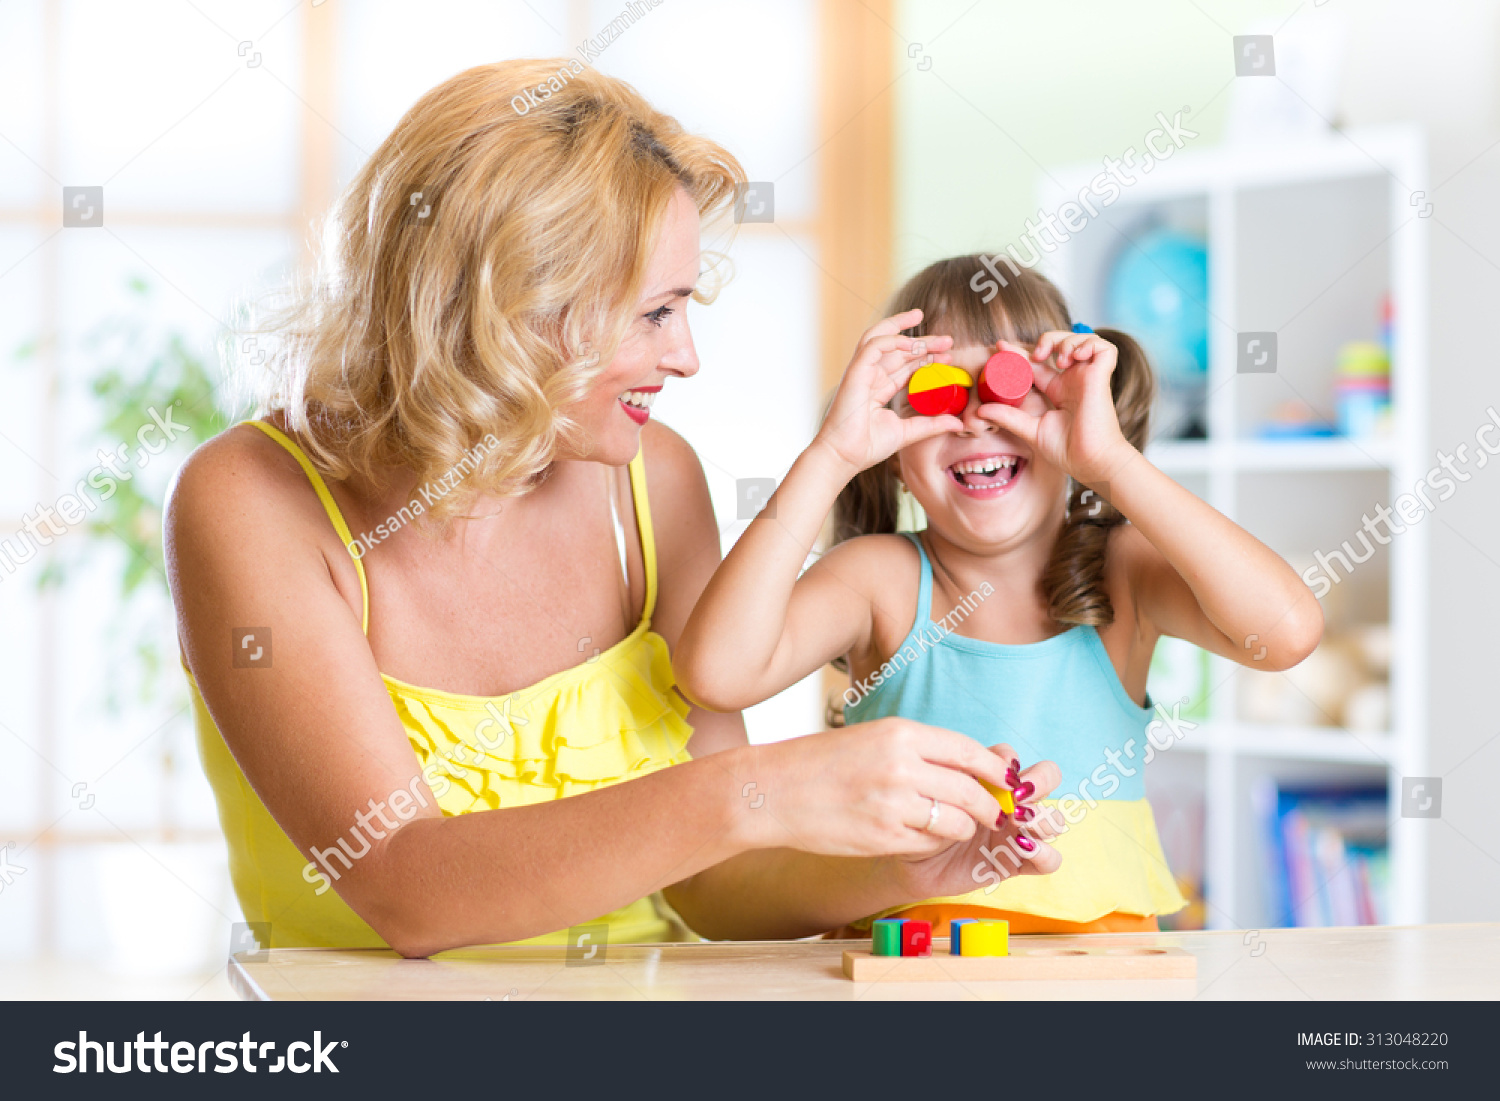 Mom Play Toys : Mother child daughter have fun playing stock photo